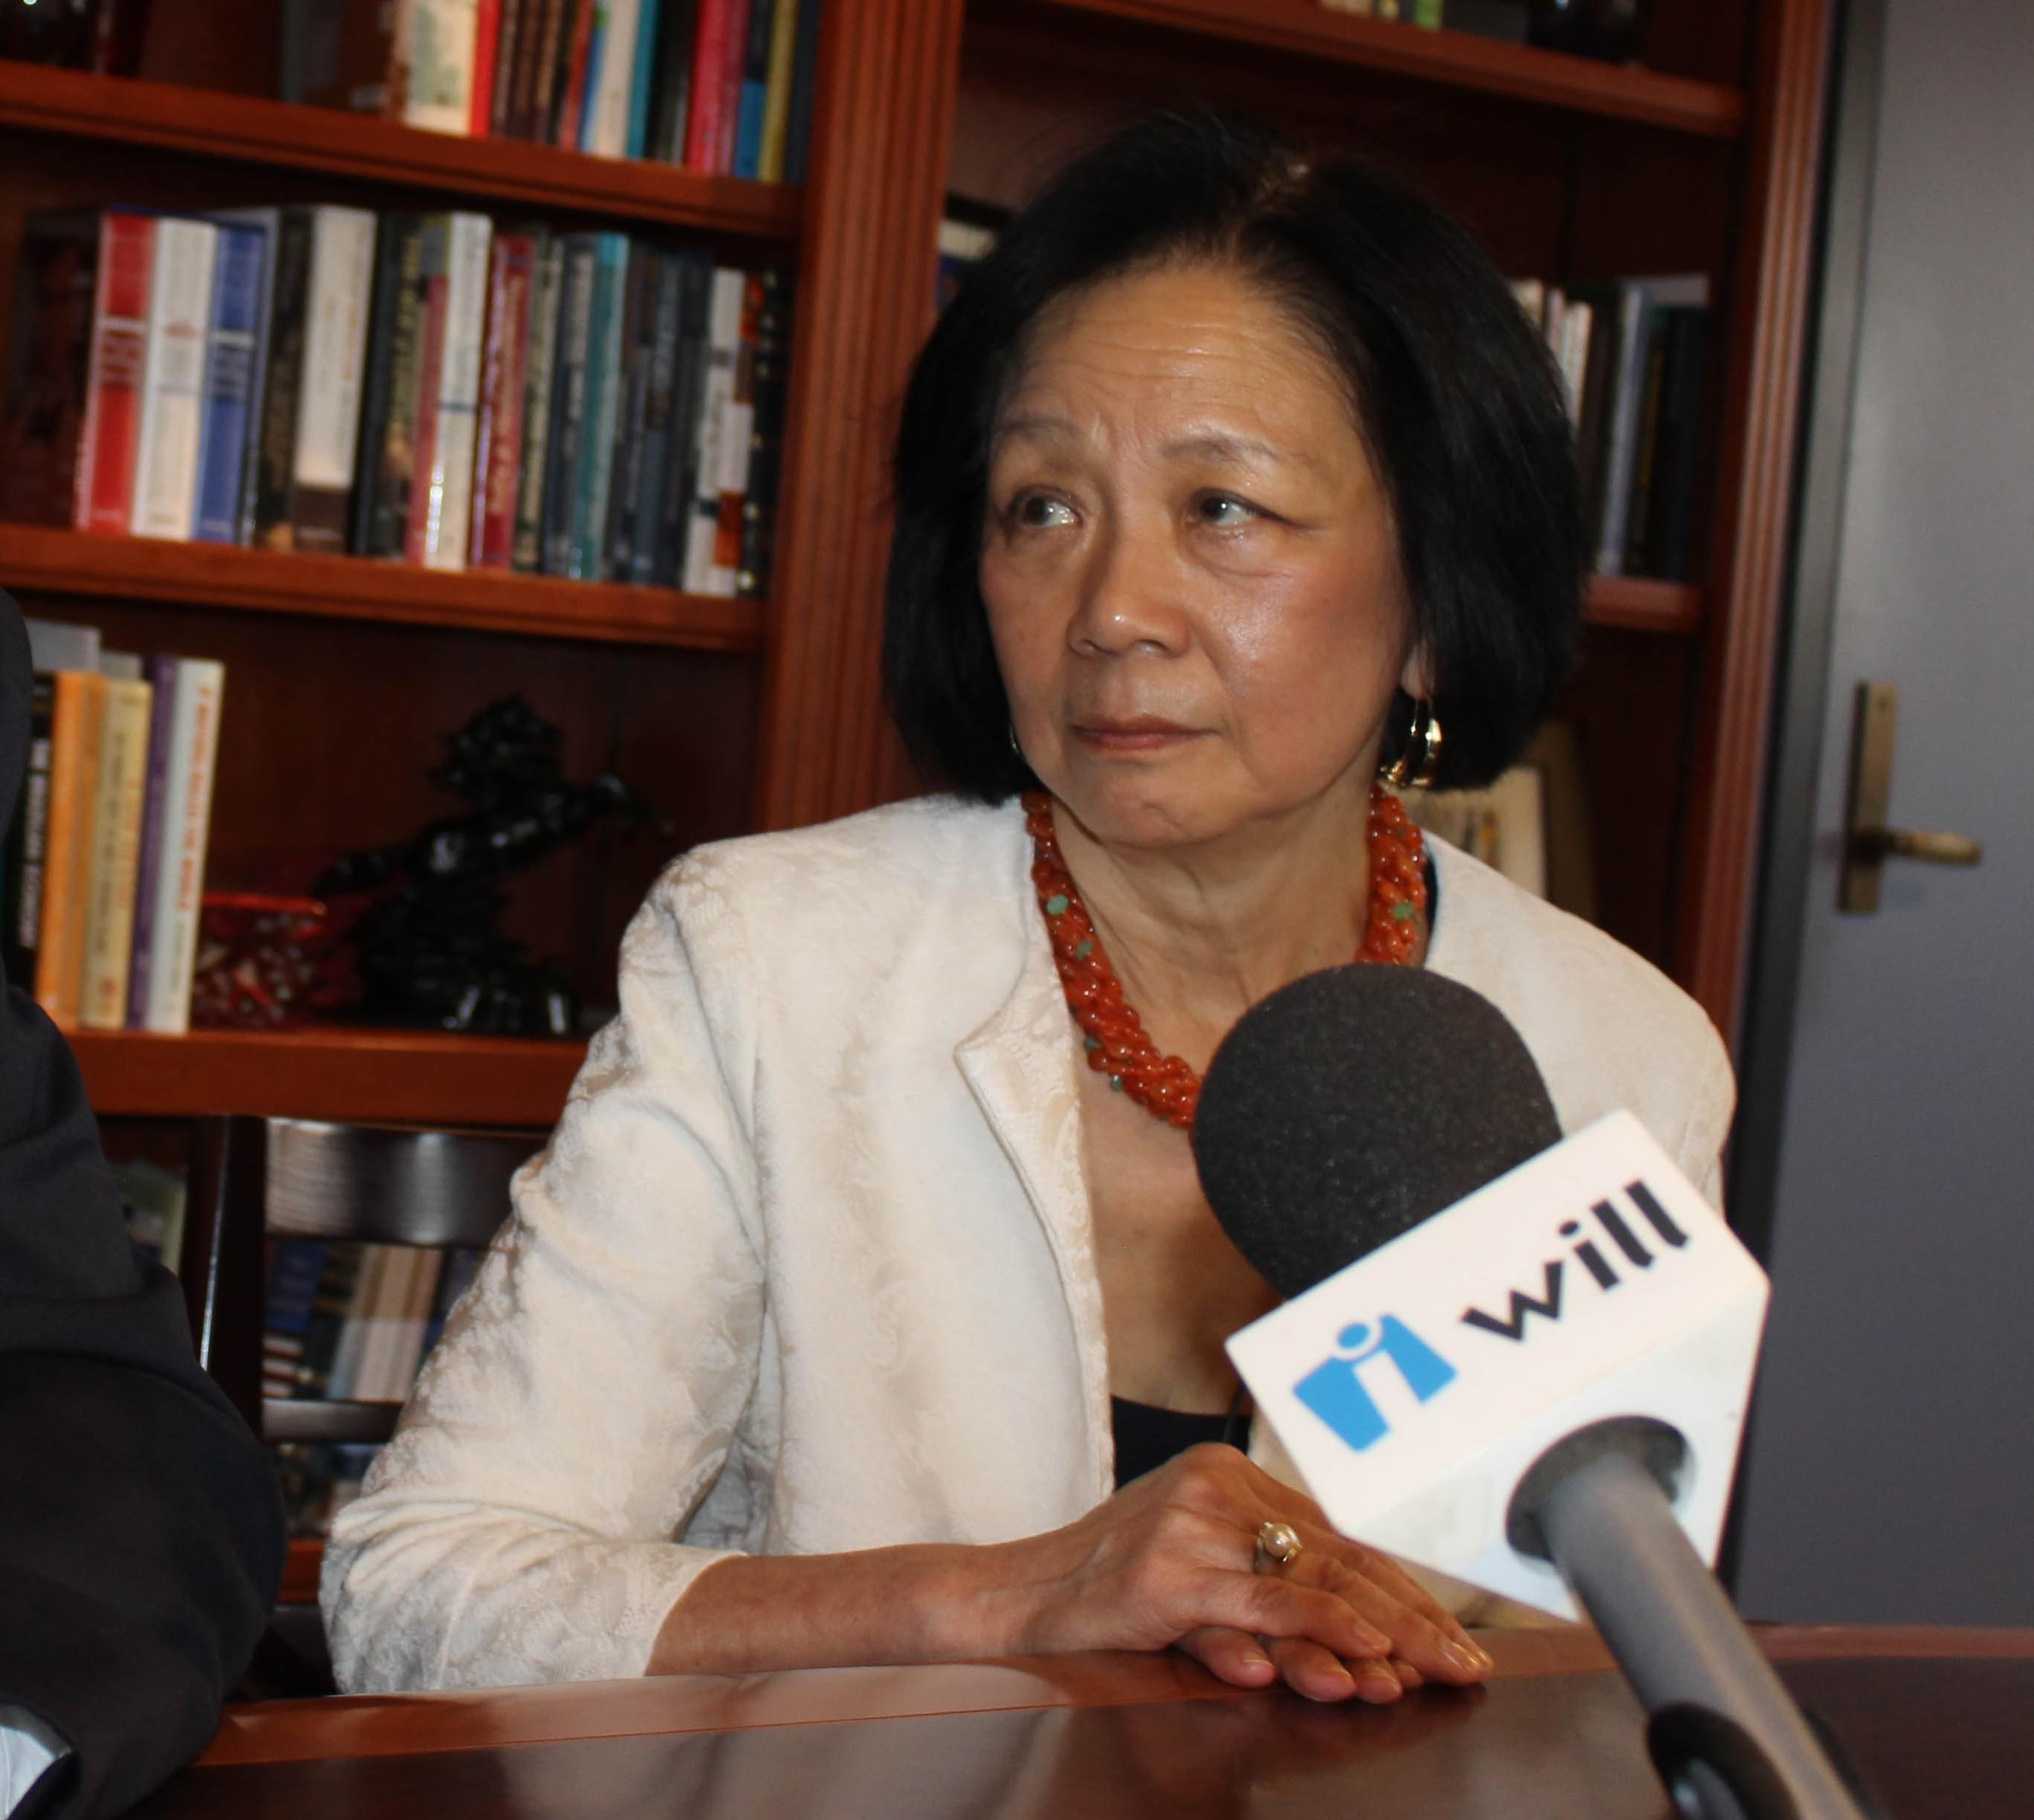 U of I Urbana Chancellor Phyllis Wise, in an interview Monday on campus